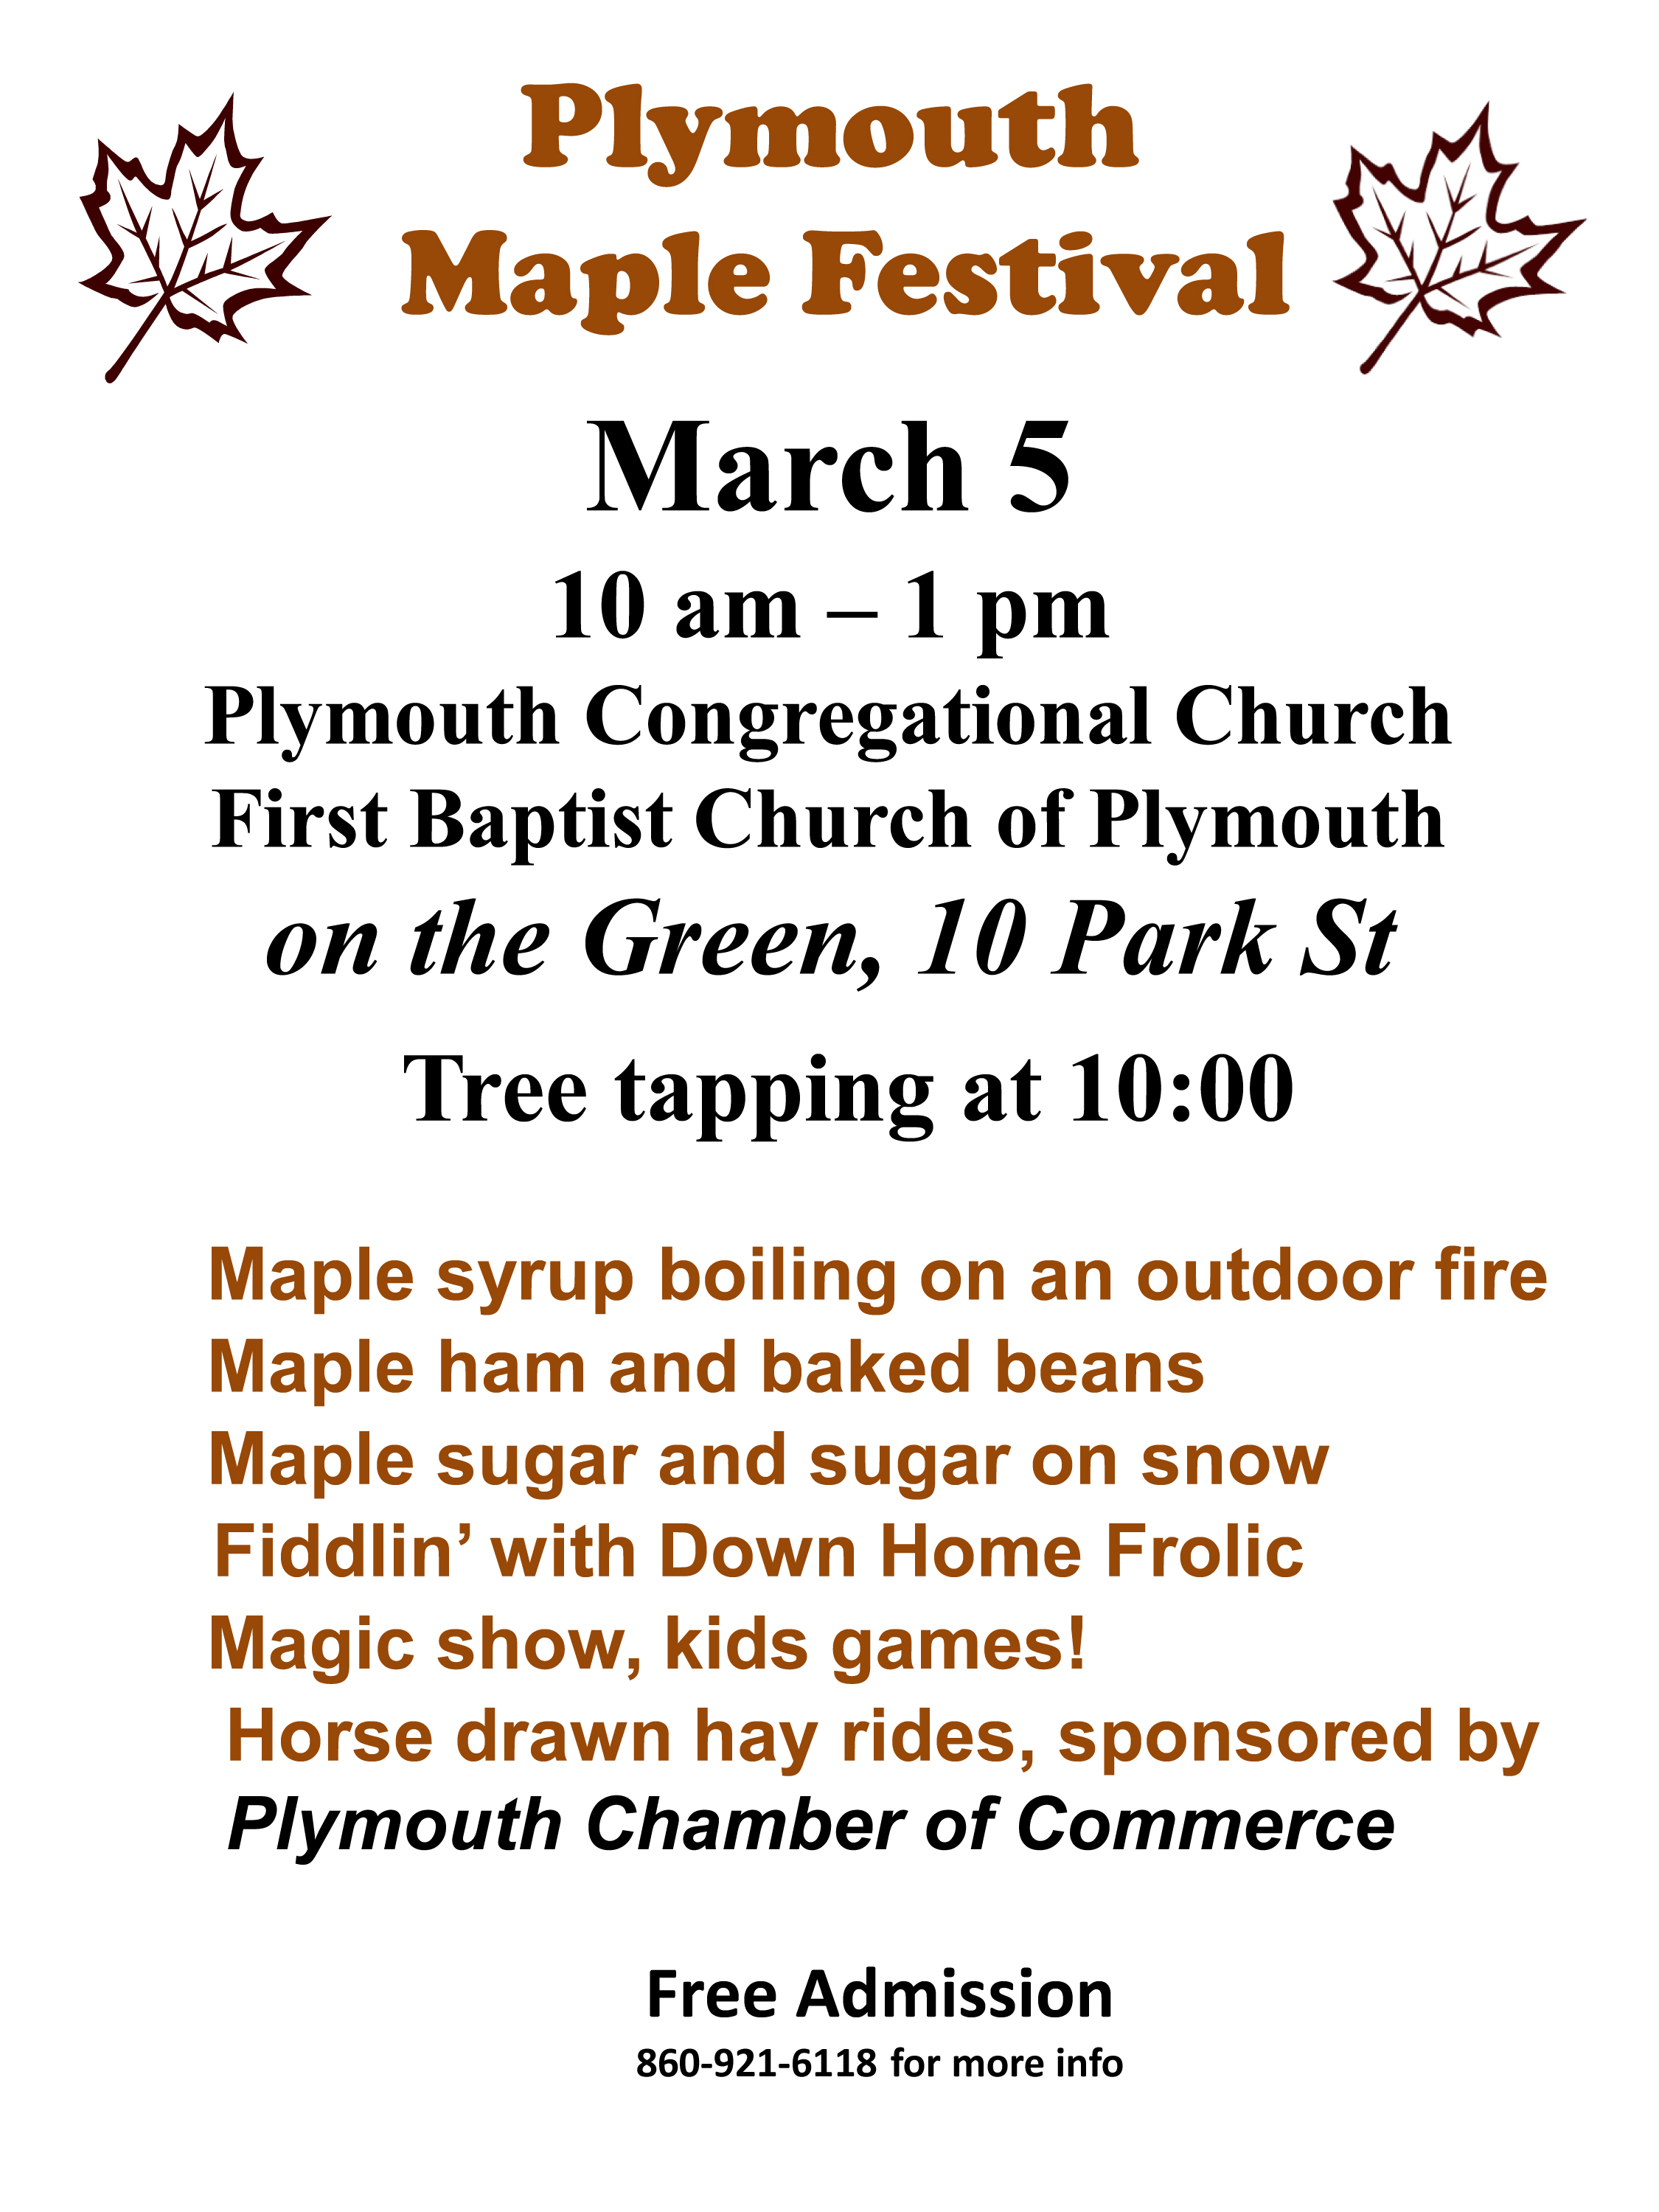 Plymouth Maple Festival